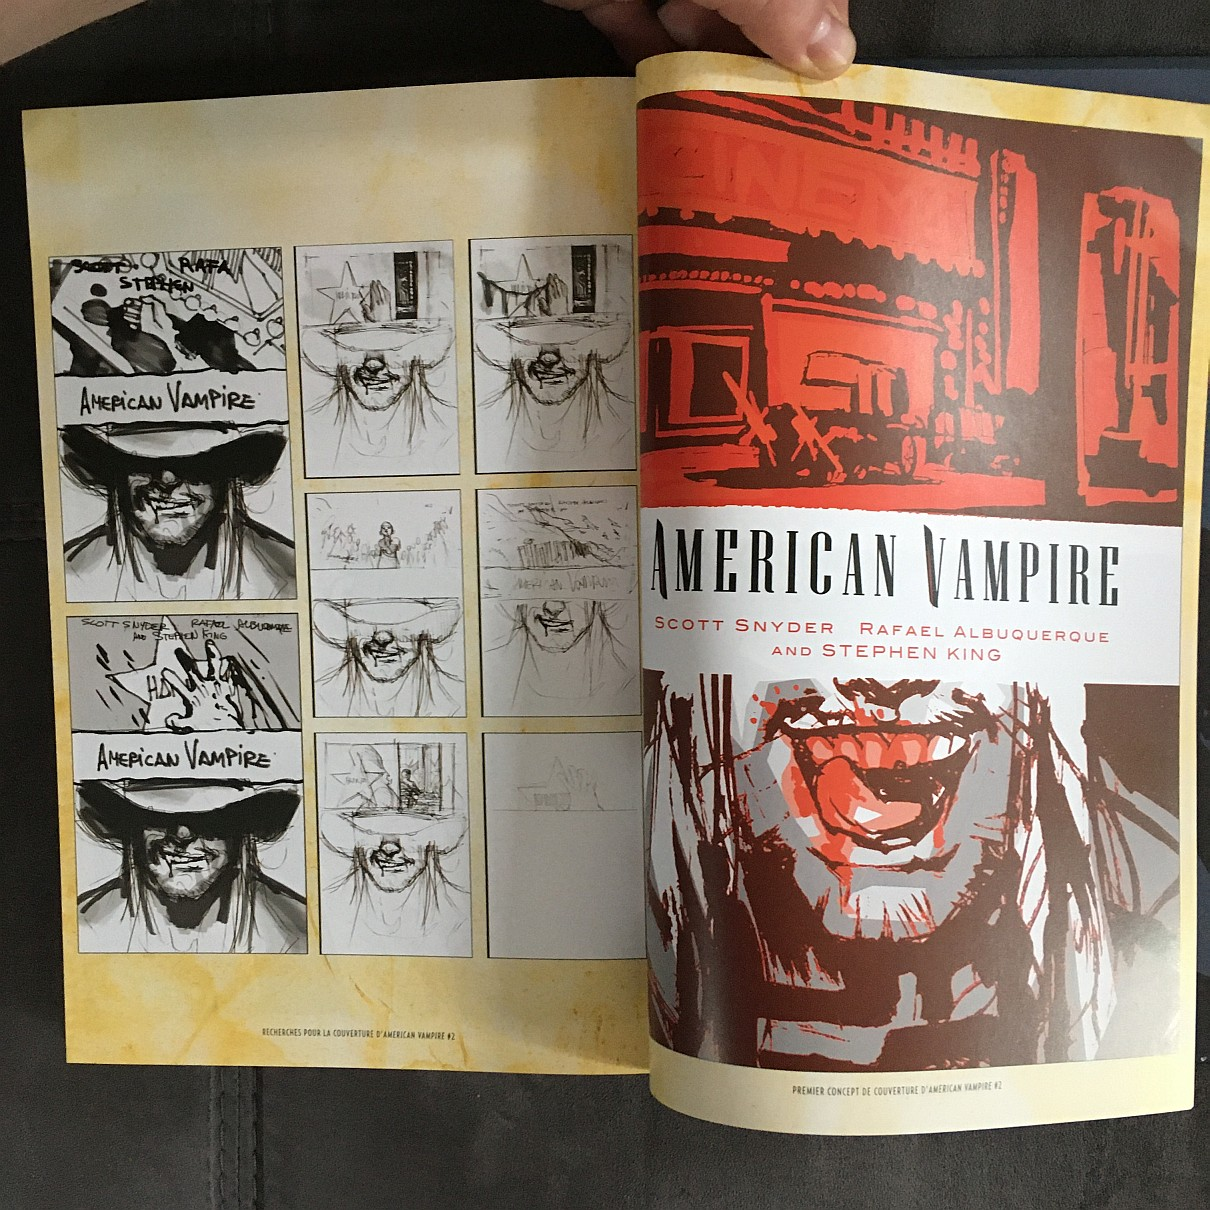 American Vampire Stephenking Reedition Urbancomics 0008